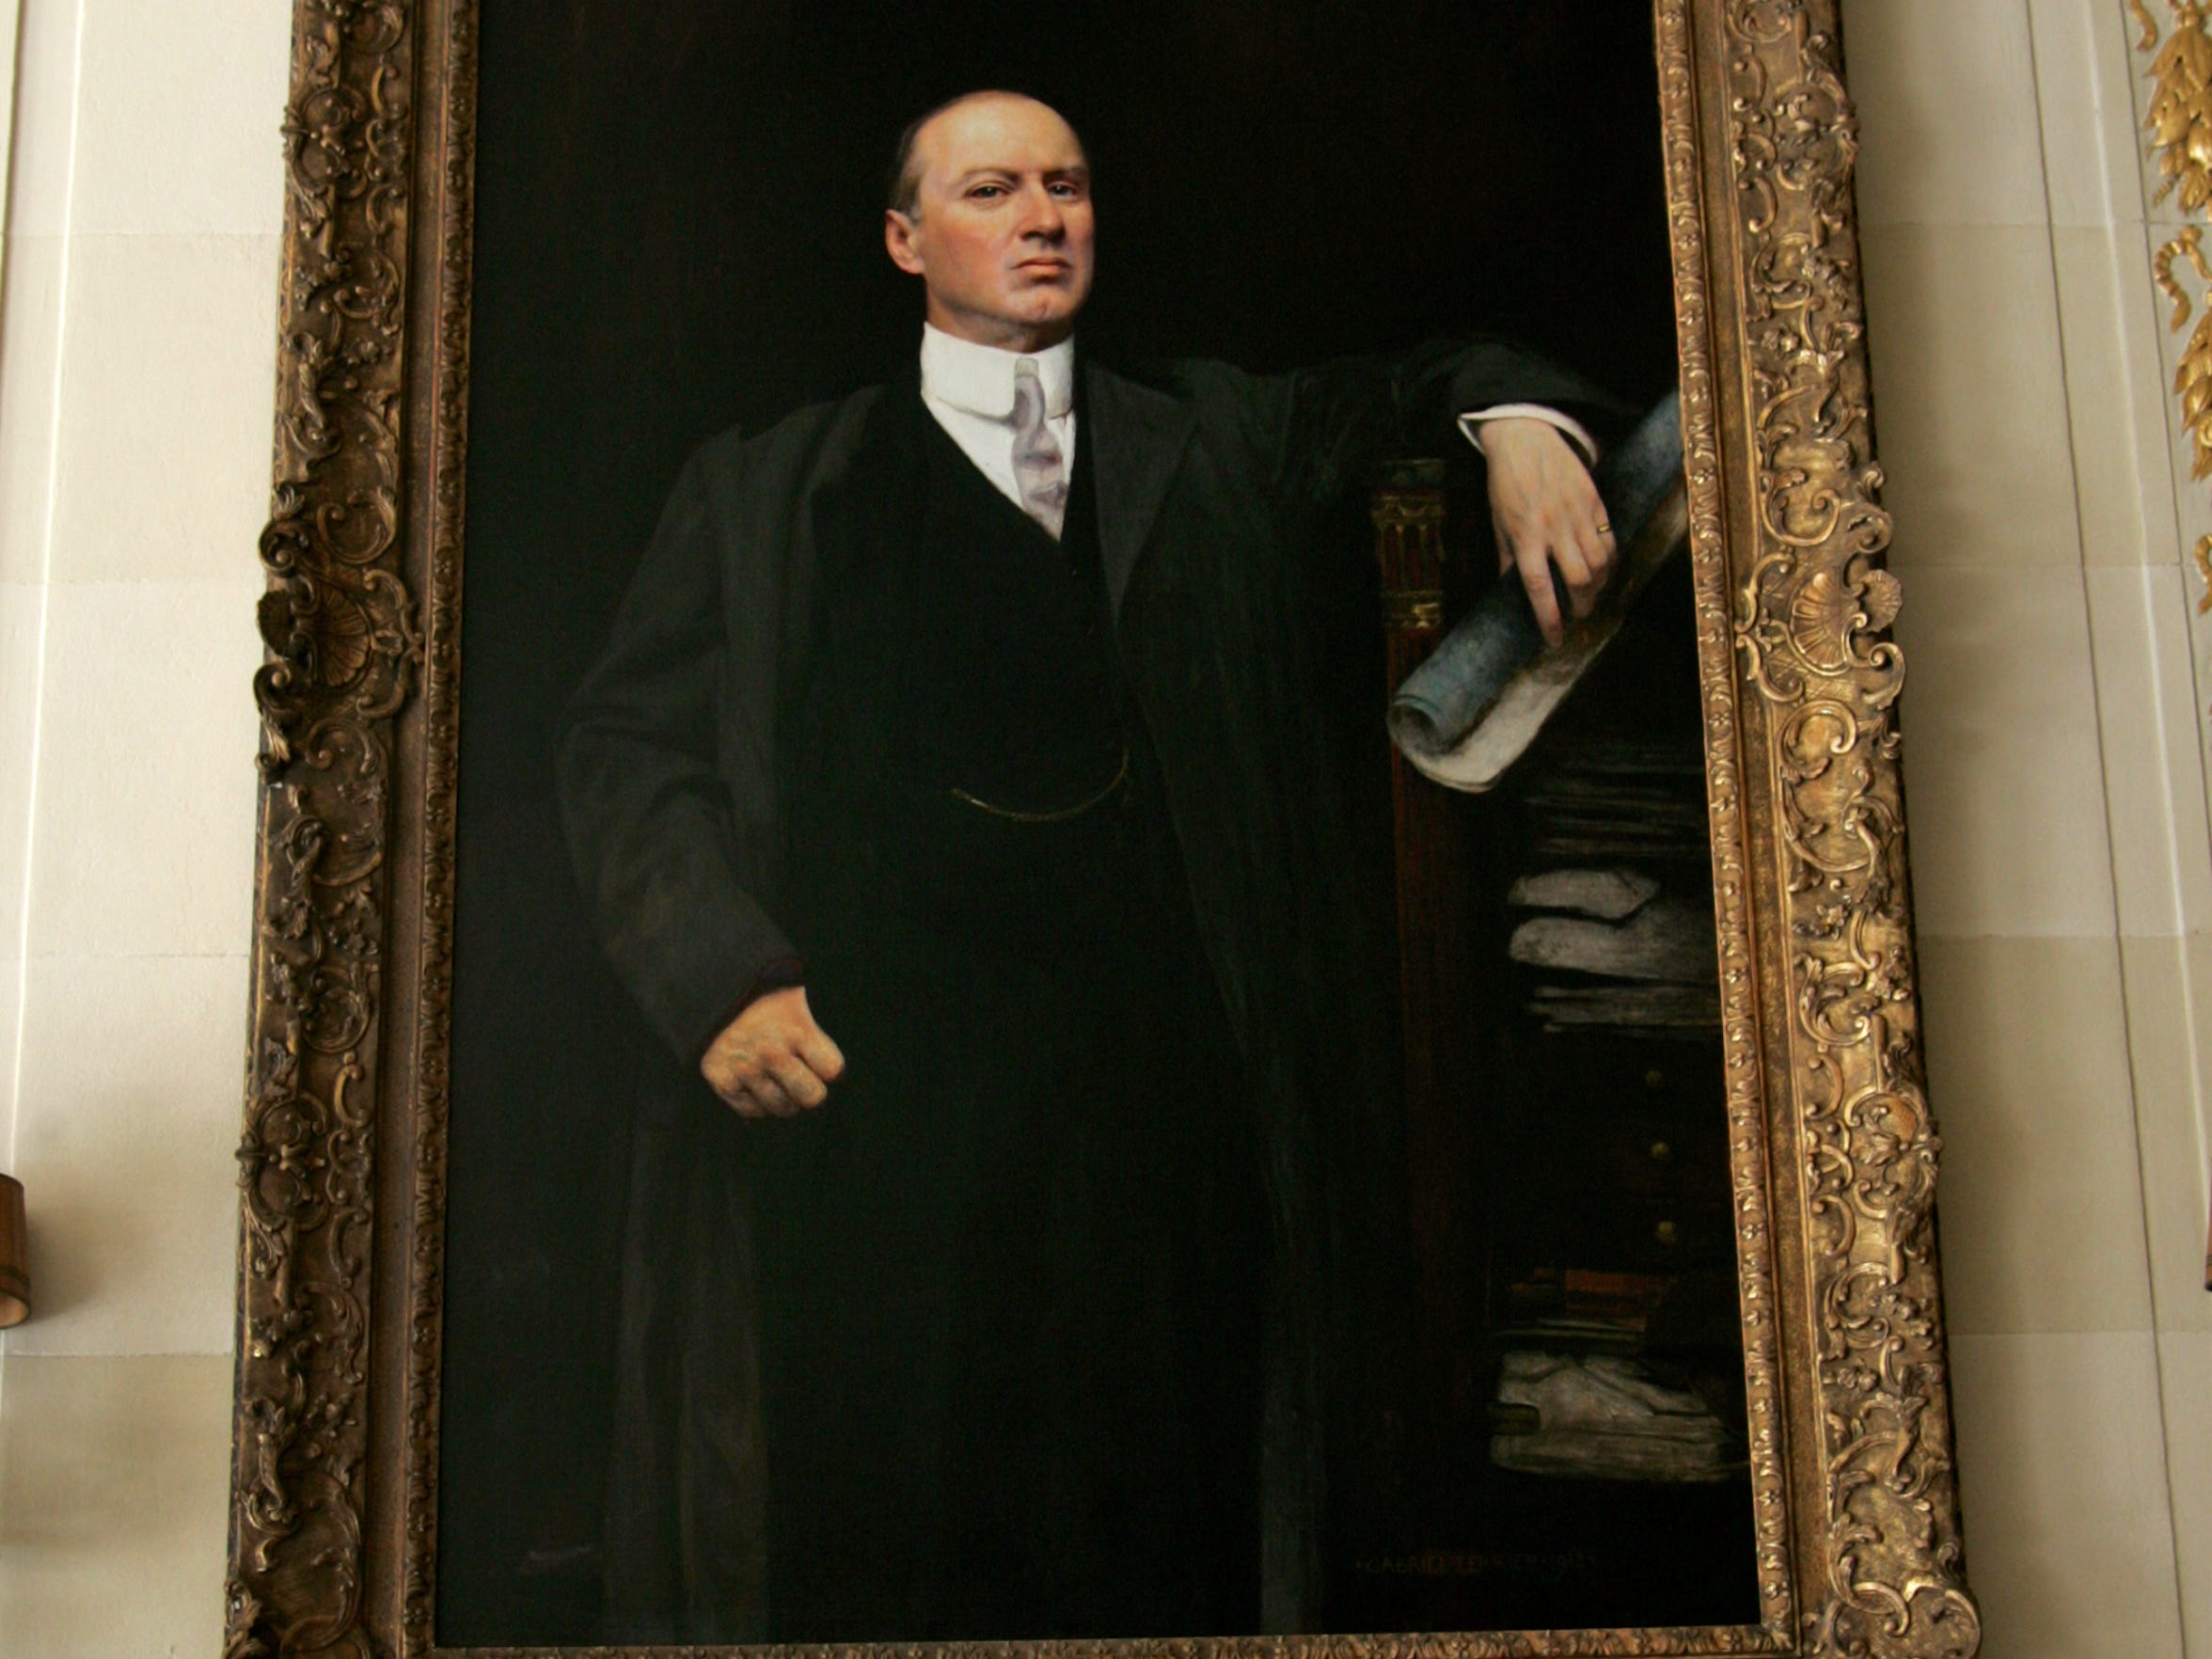 A painting of Alfred I. duPont in the reception hall